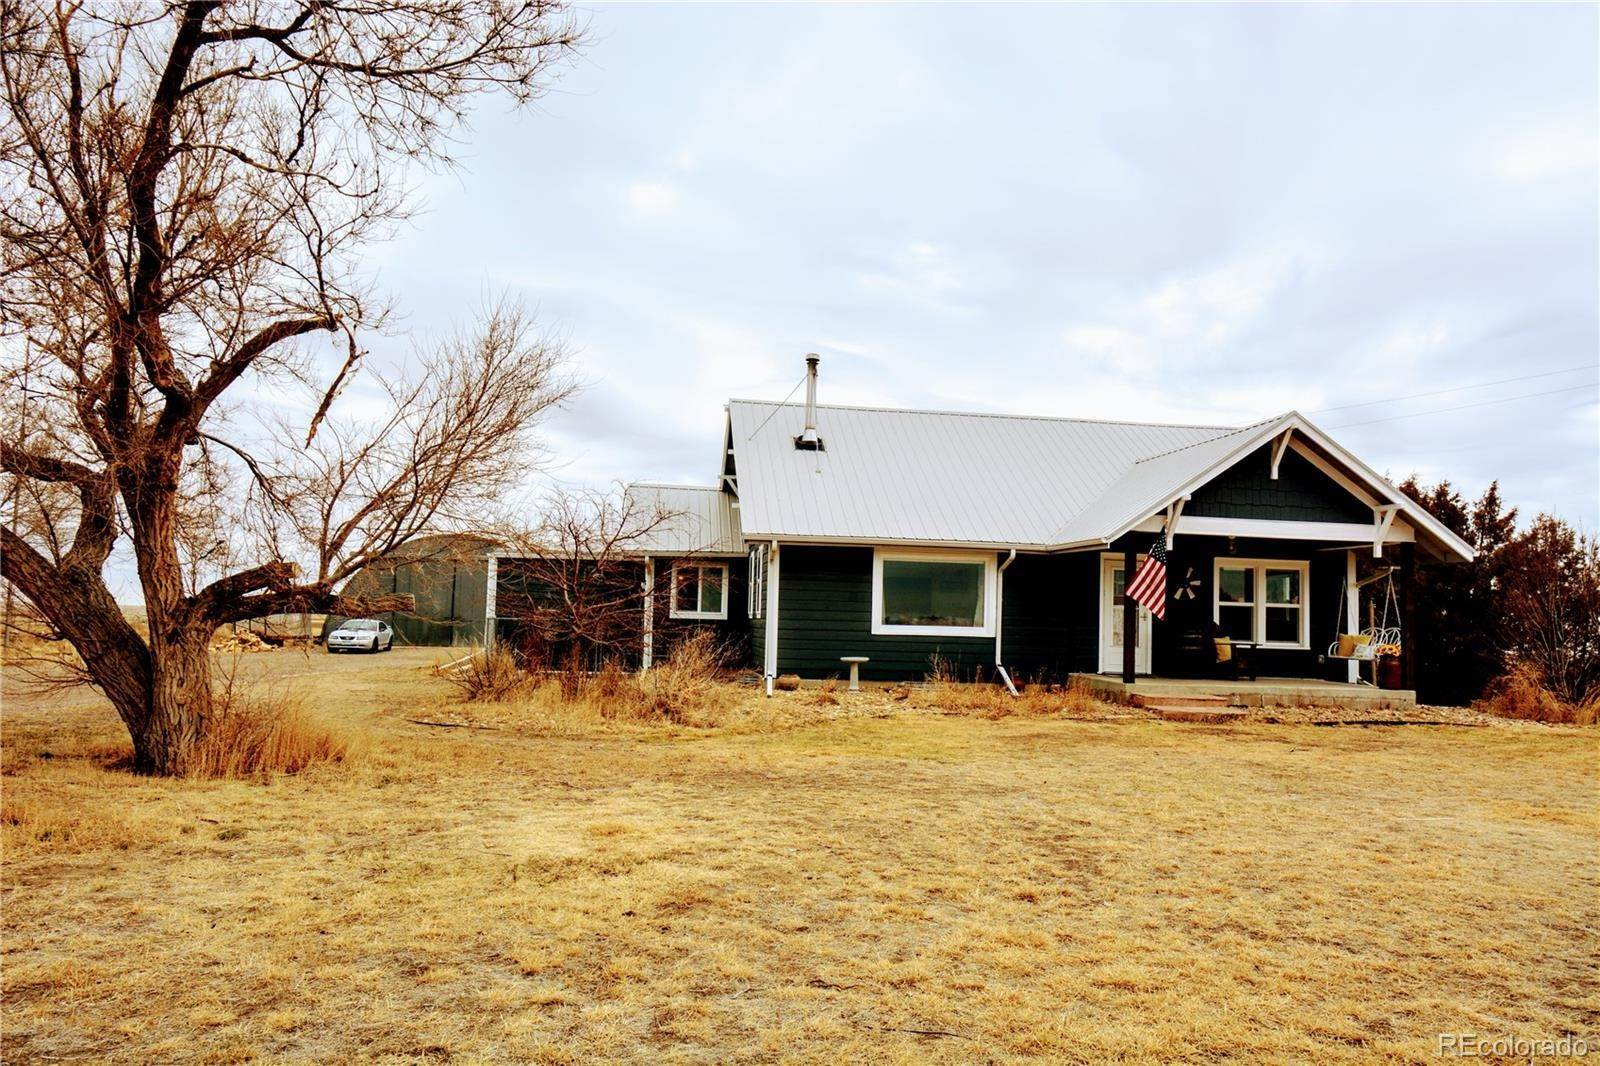 Single Family Homes for Sale at 40960 County Road 85 Briggsdale, Colorado 80611 United States